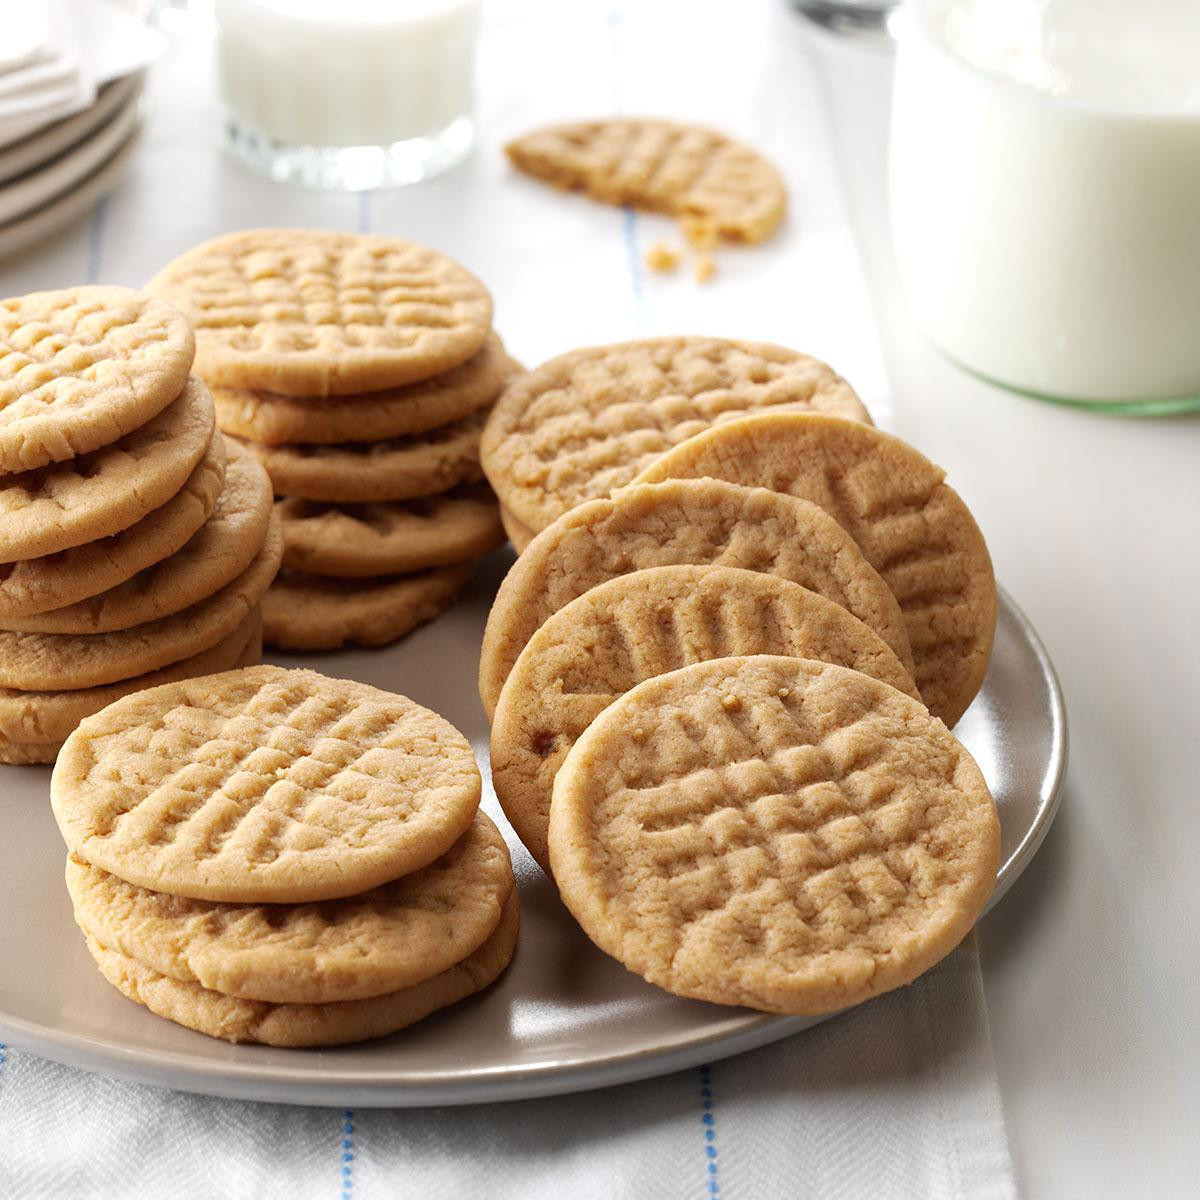 Low Calorie Peanut Butter Cookies Recipe  Low Fat Peanut Butter Cookies Recipe